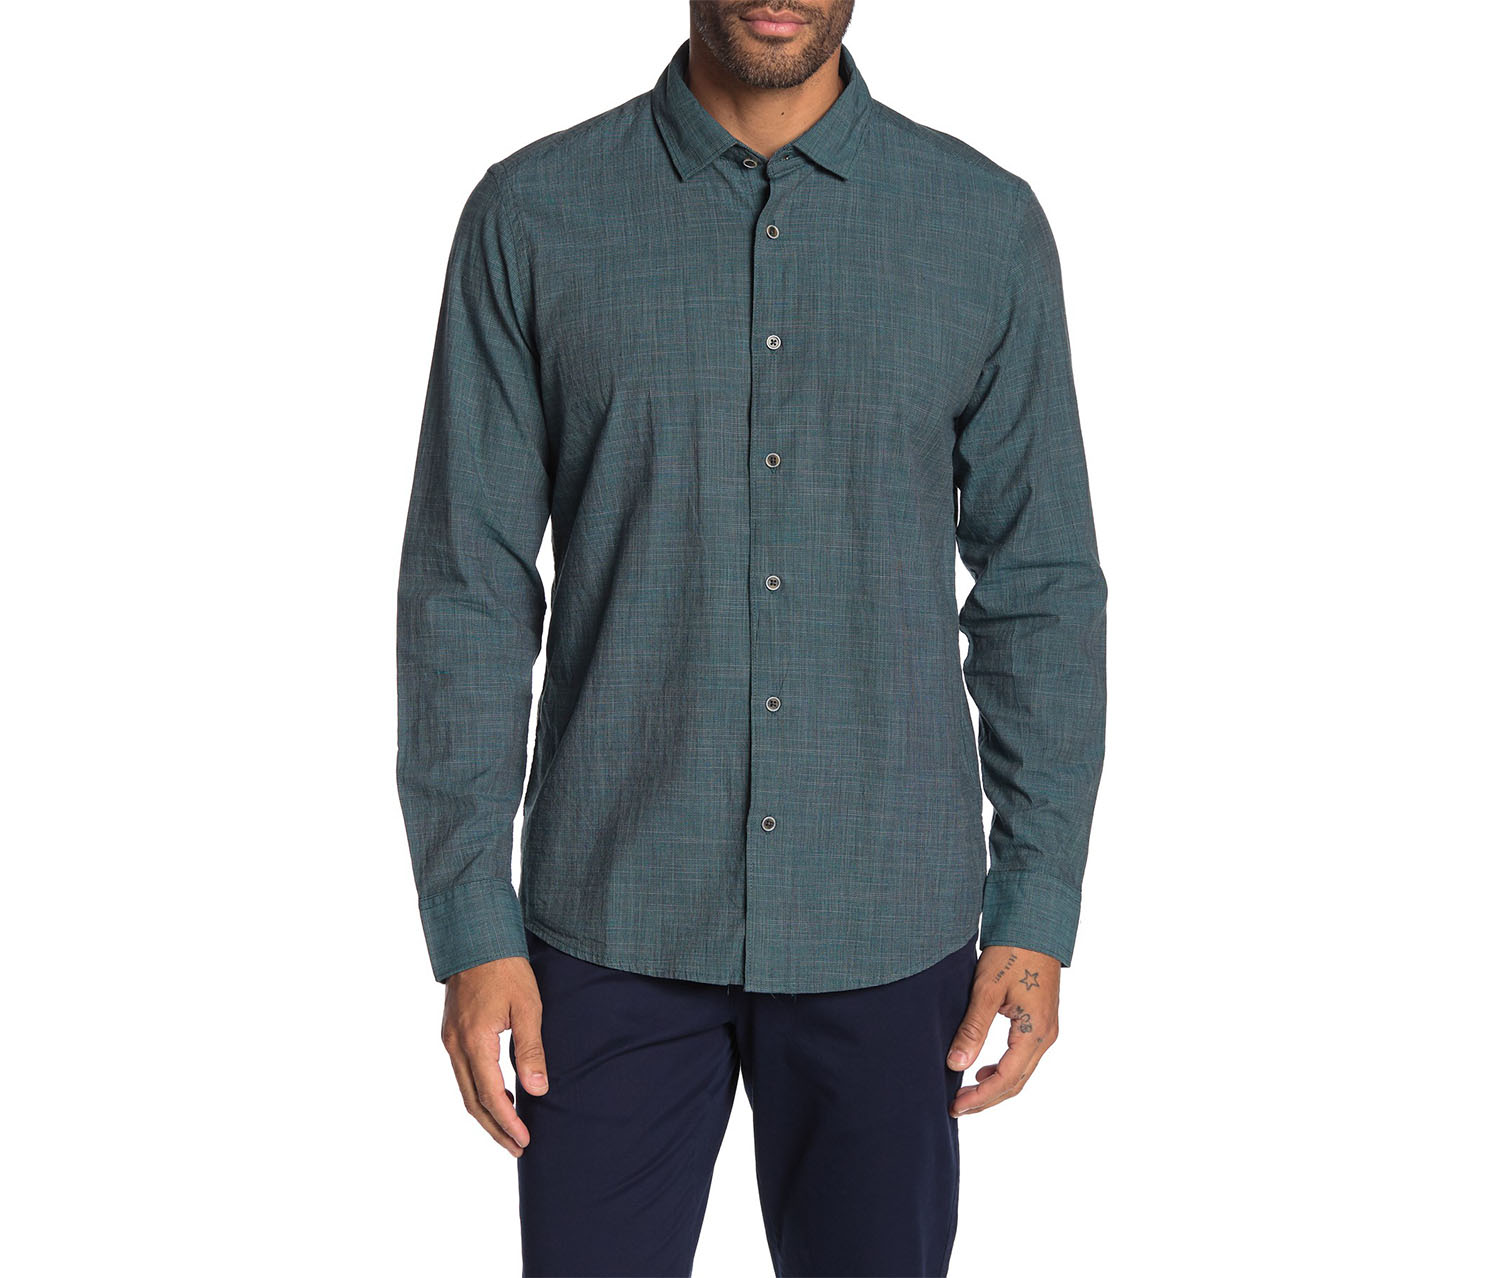 IKE BEHAR Men's Crosshatch Long Sleeve Shirt, Green